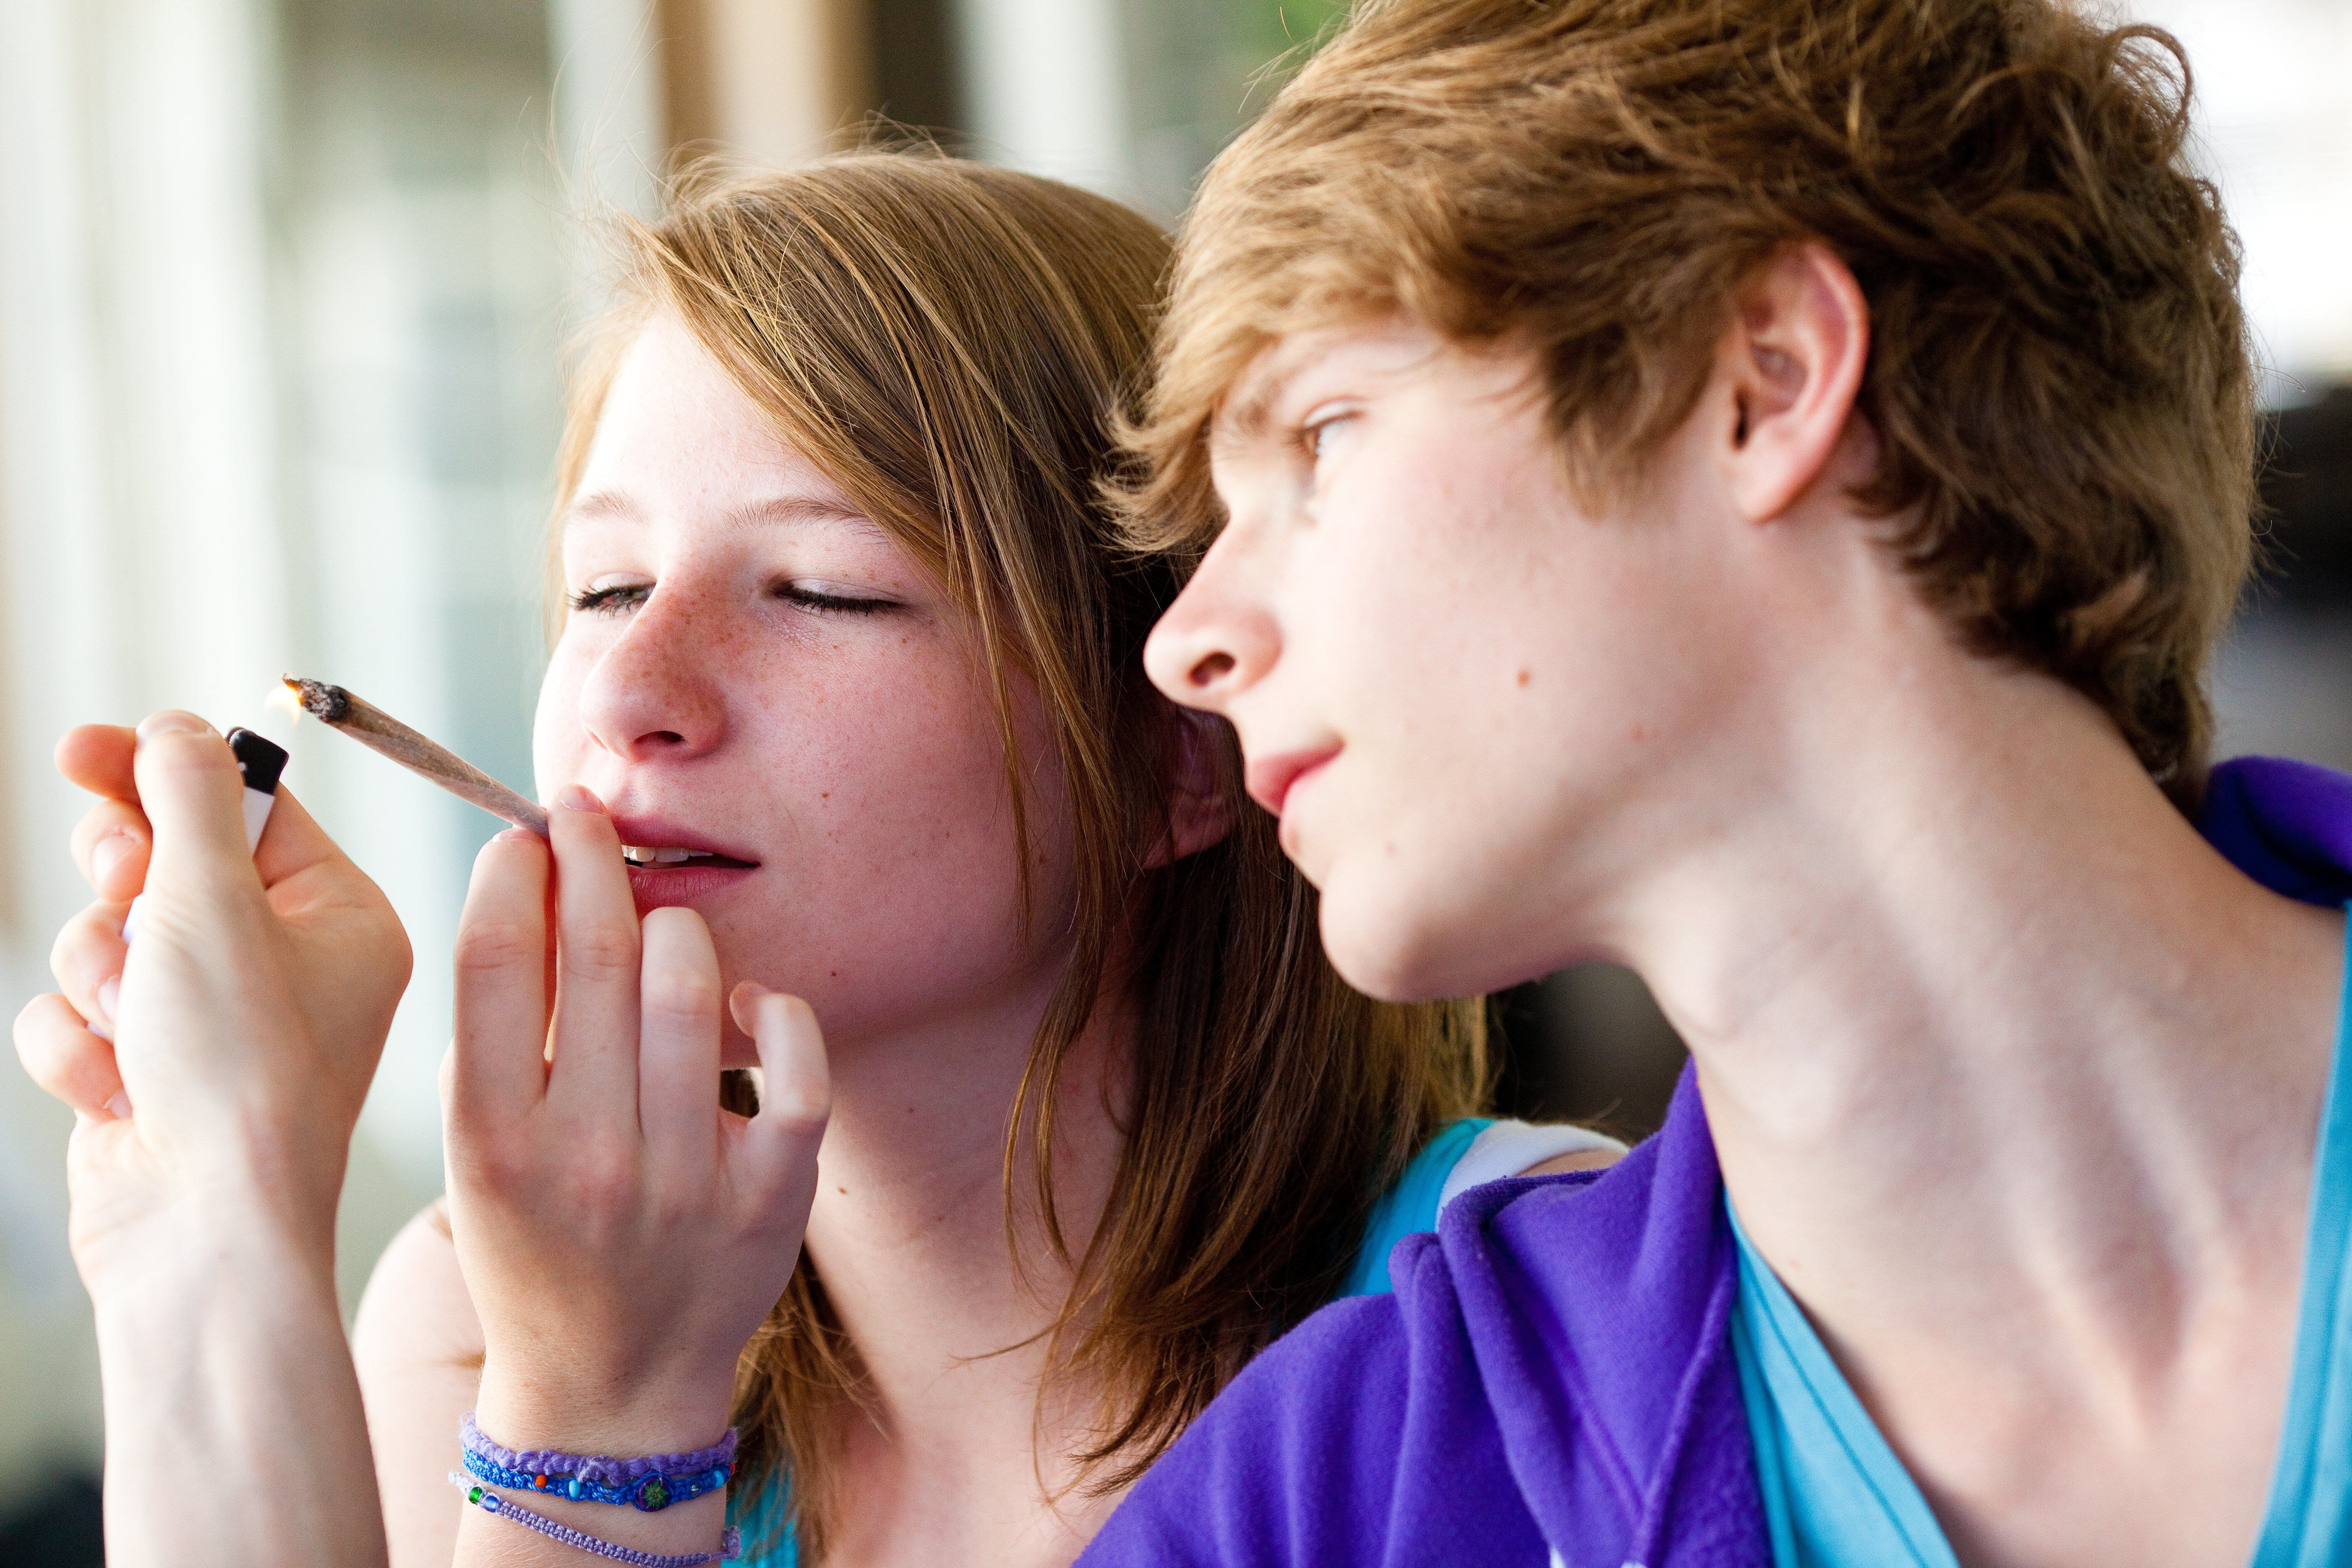 Young teenagers smoking marijuana which contains THC